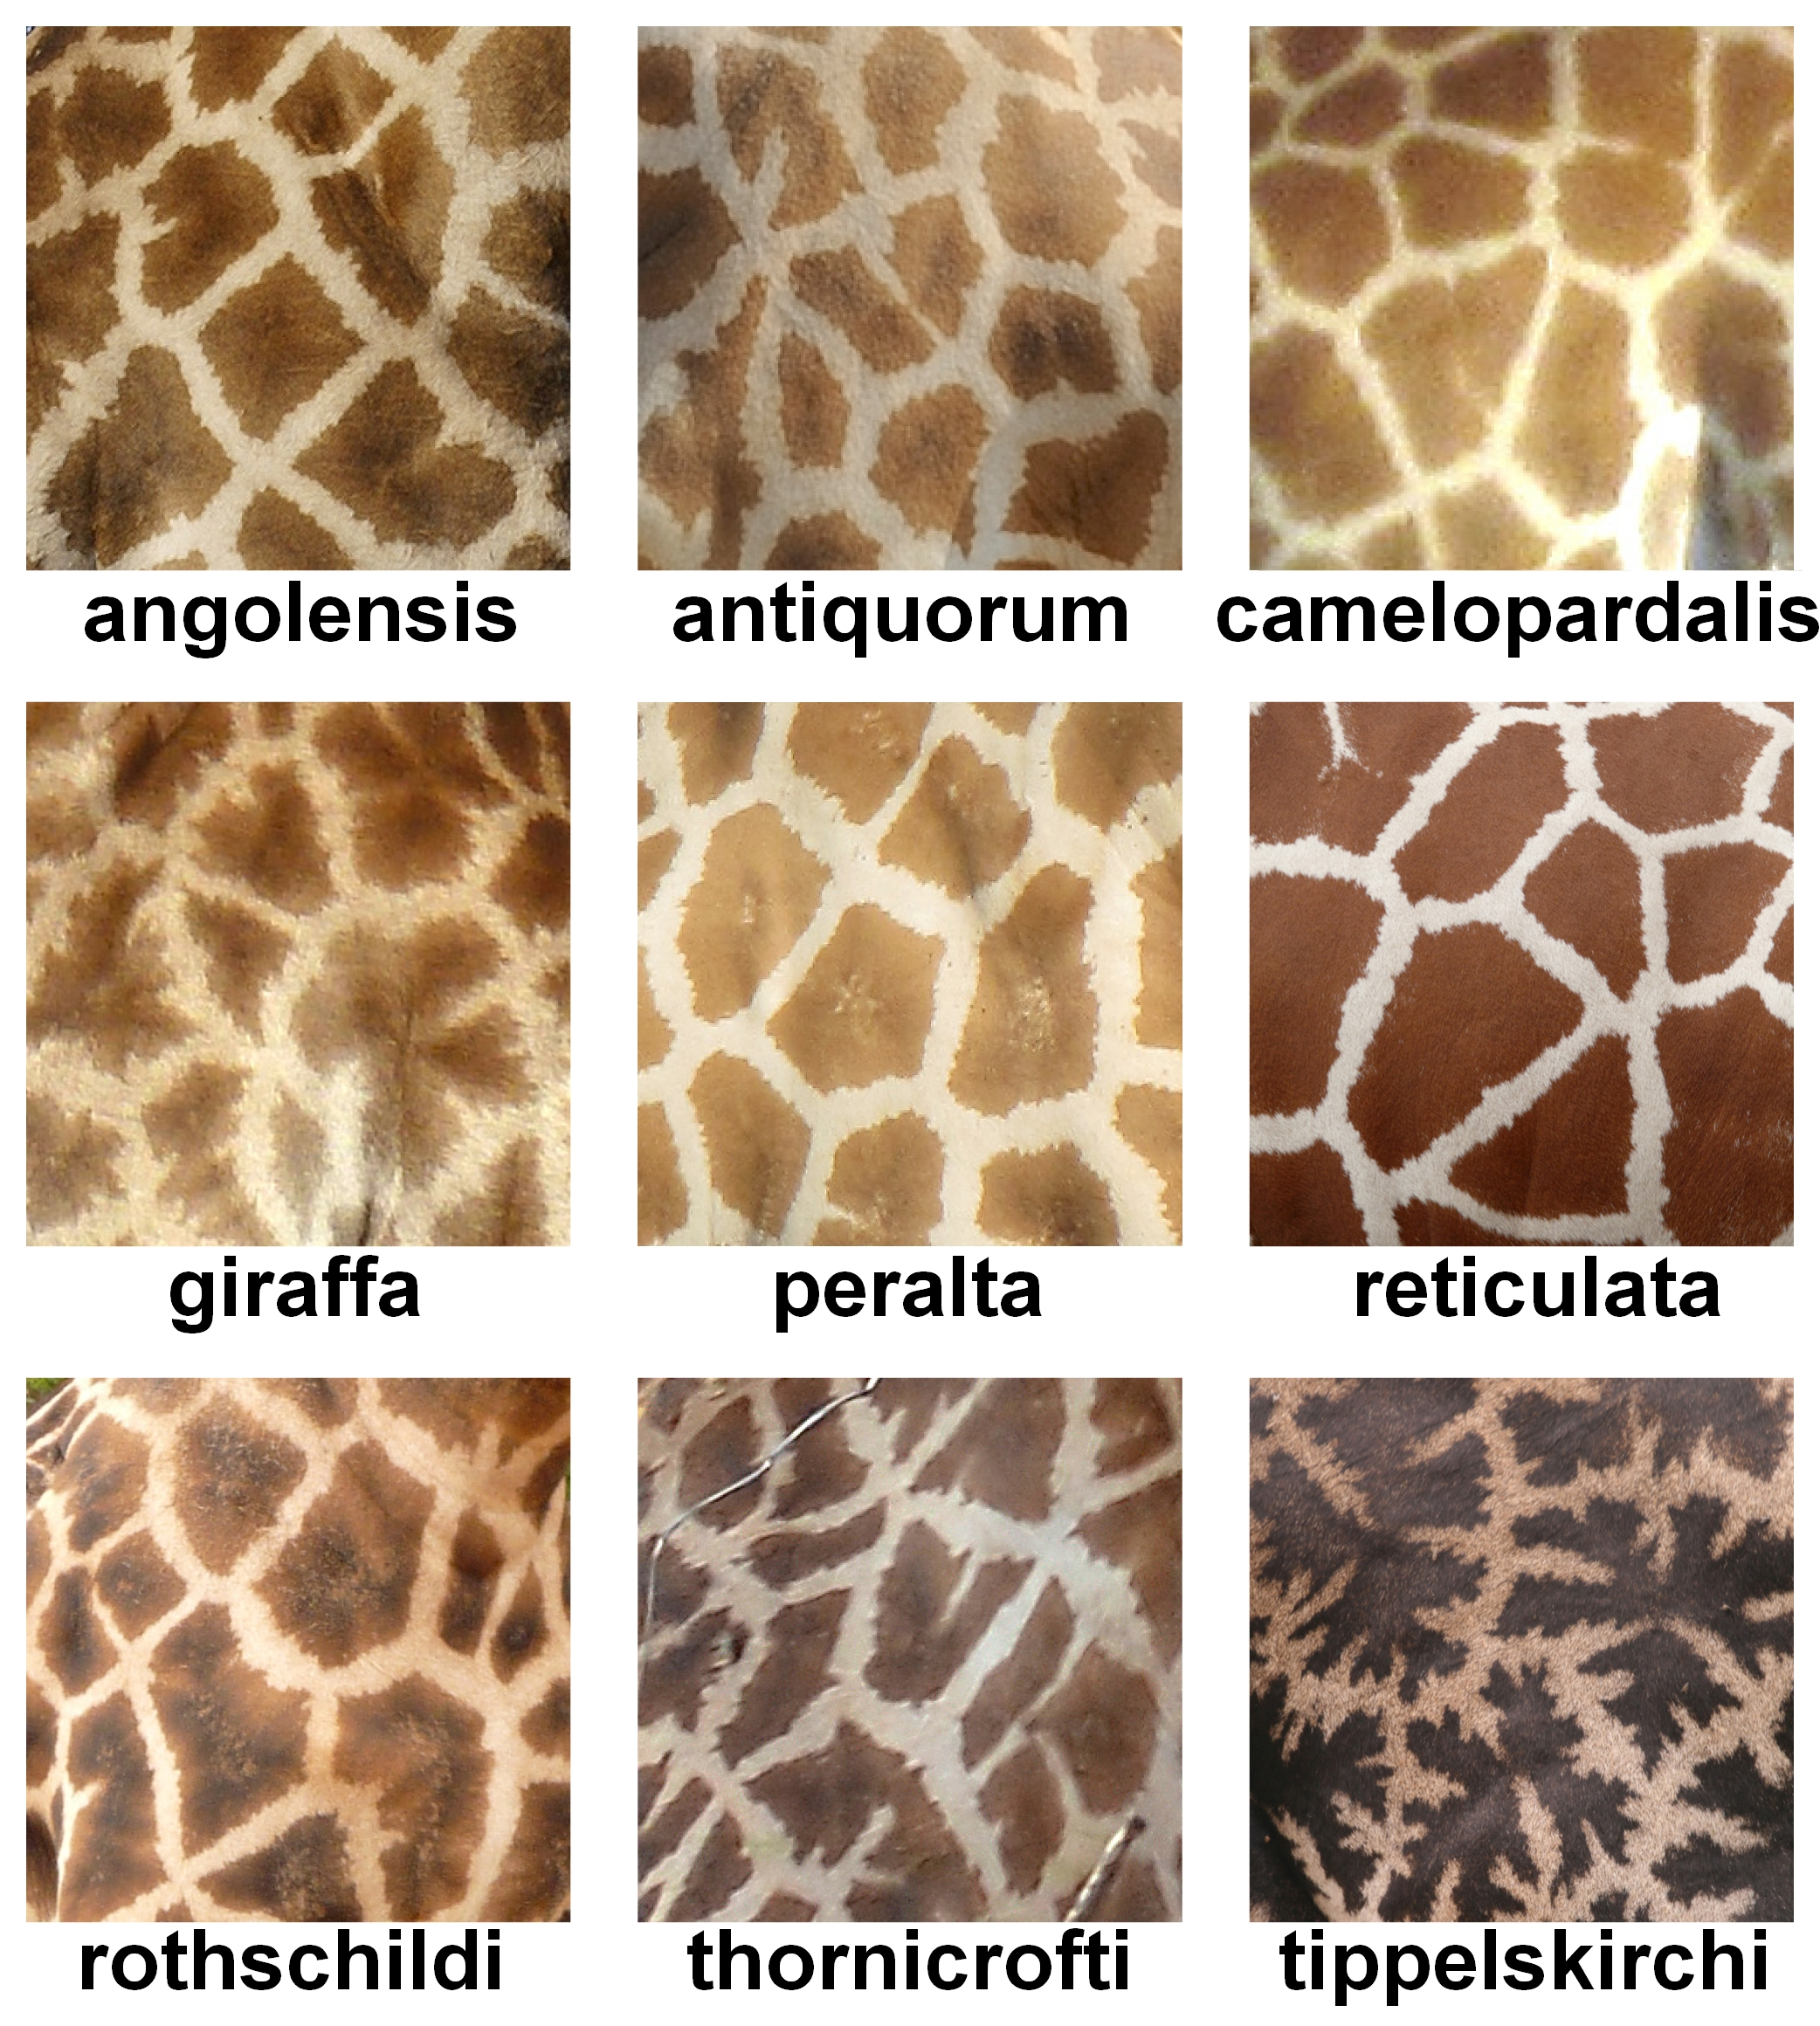 https://upload.wikimedia.org/wikipedia/commons/5/54/The_fur_pattern_of_all_nine_Giraffa_camelopardalis_subspecies.jpg